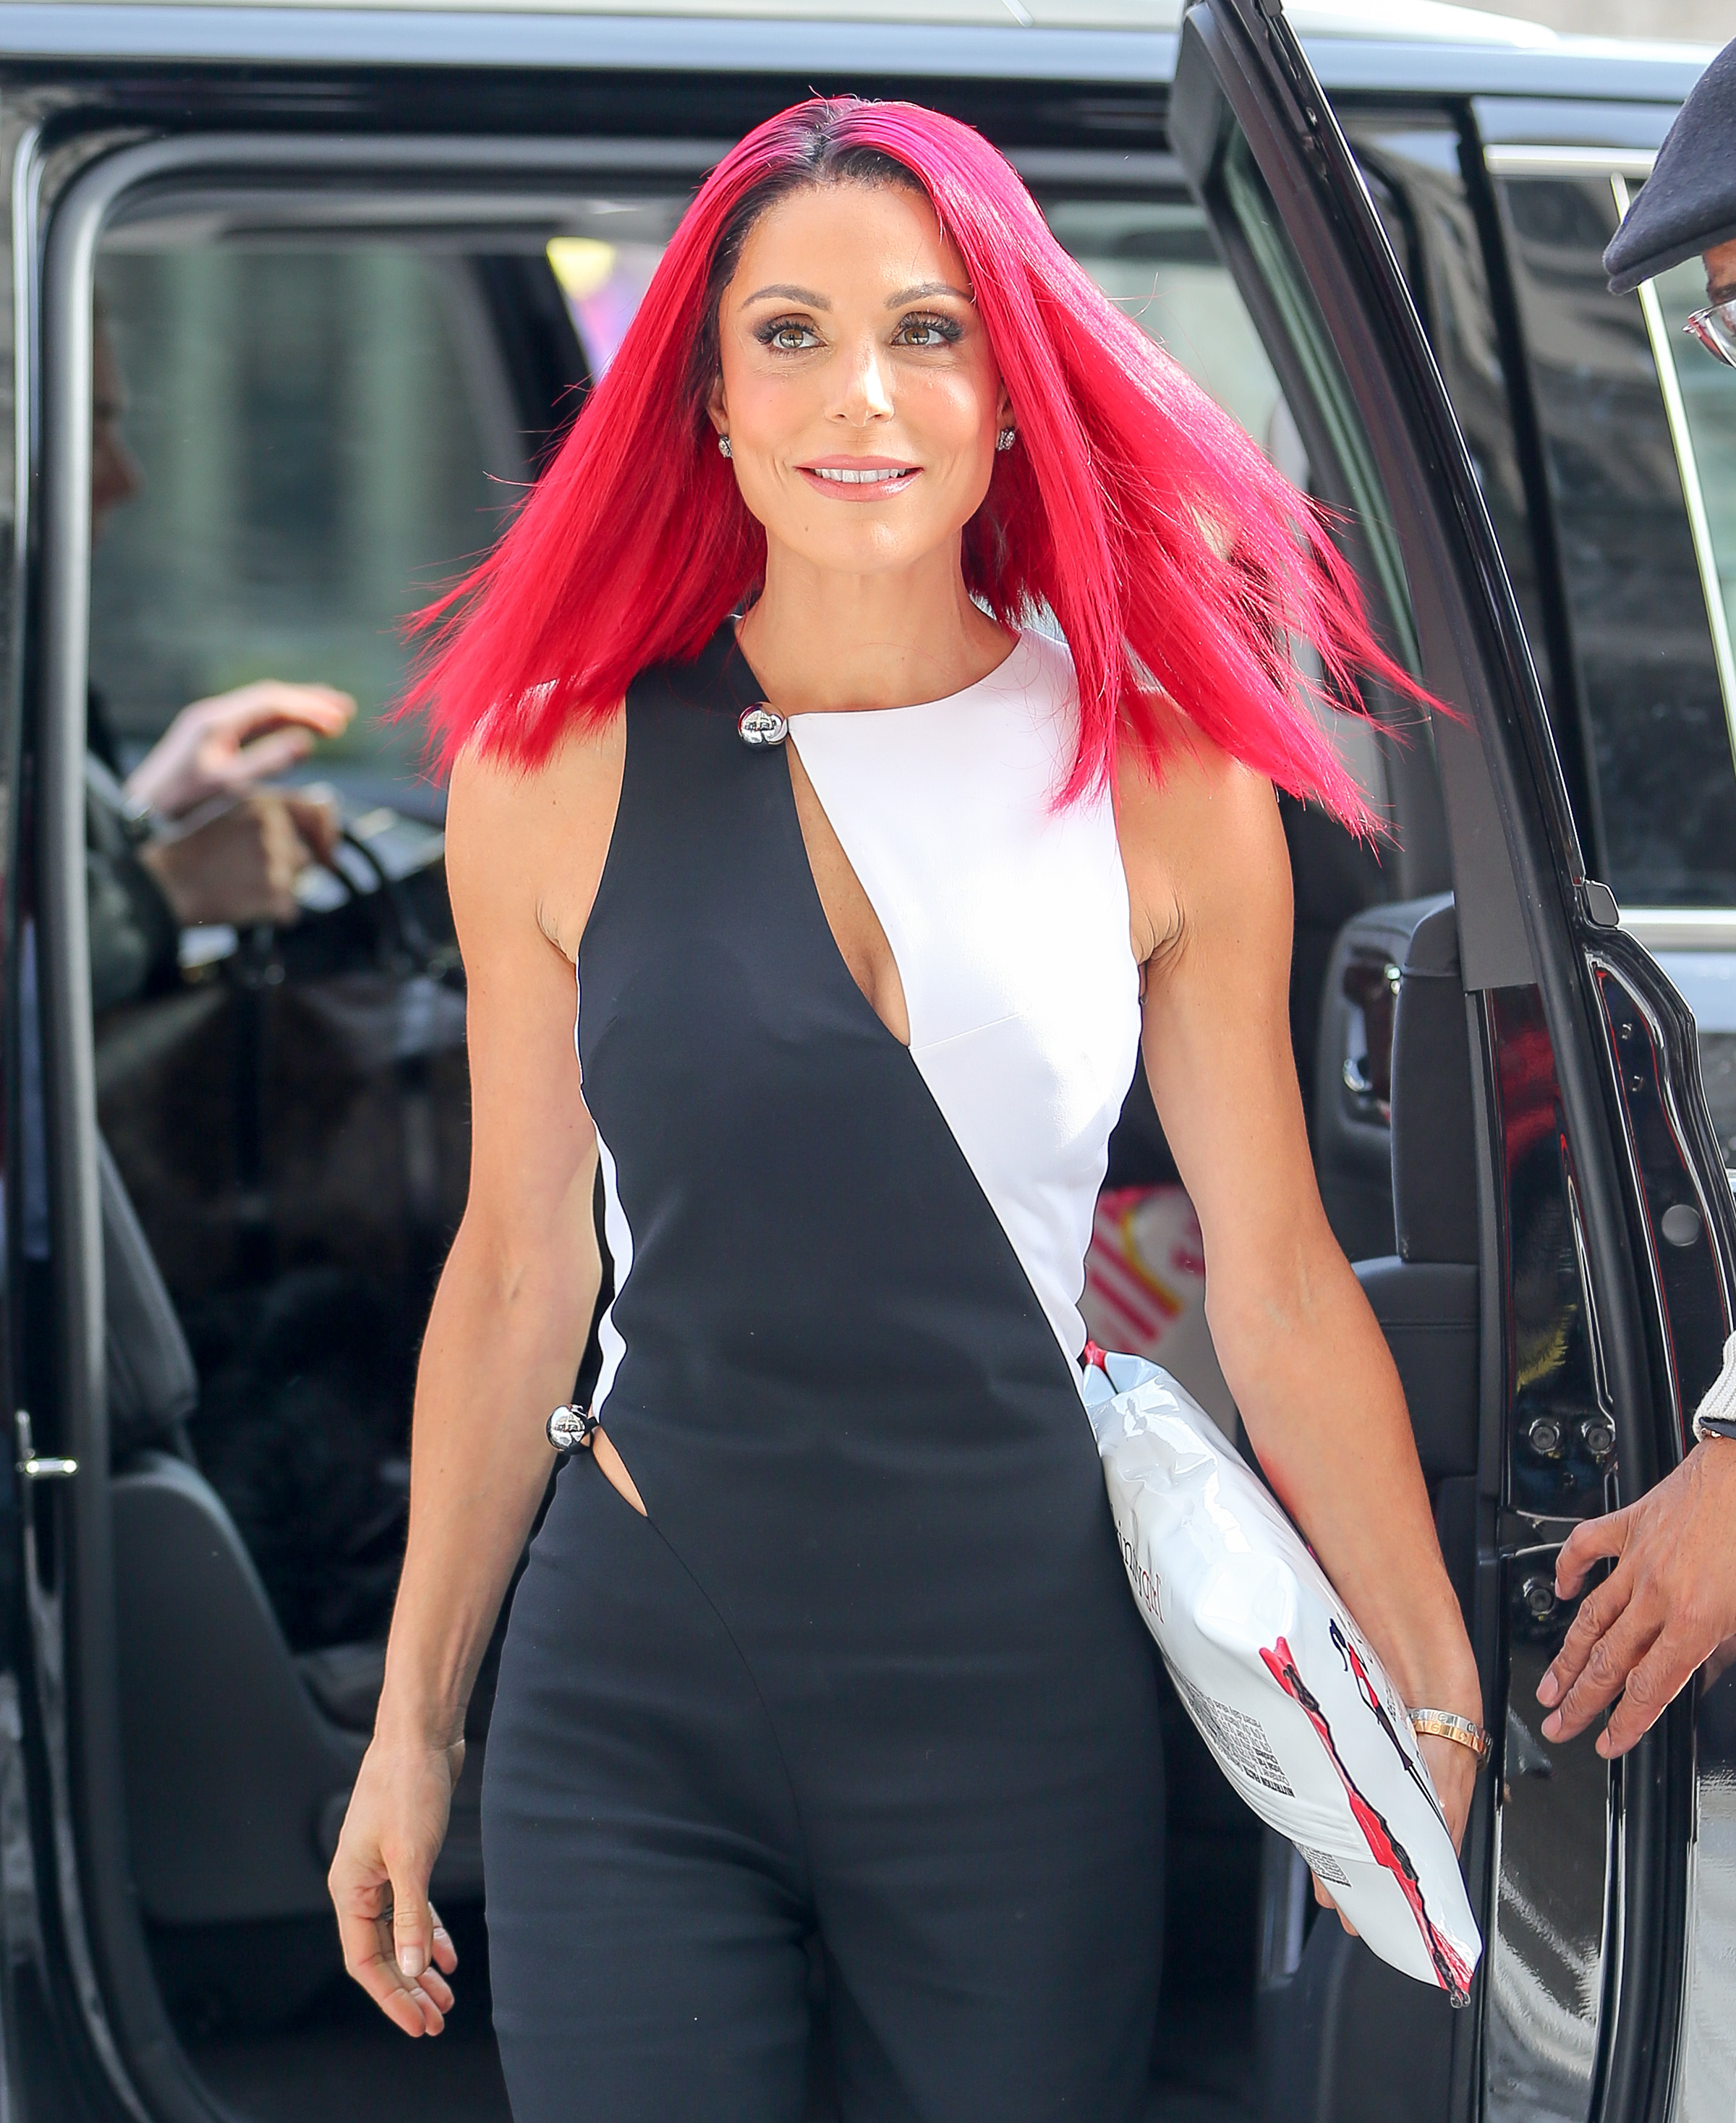 Bethenny Frankel debuts insane red hair